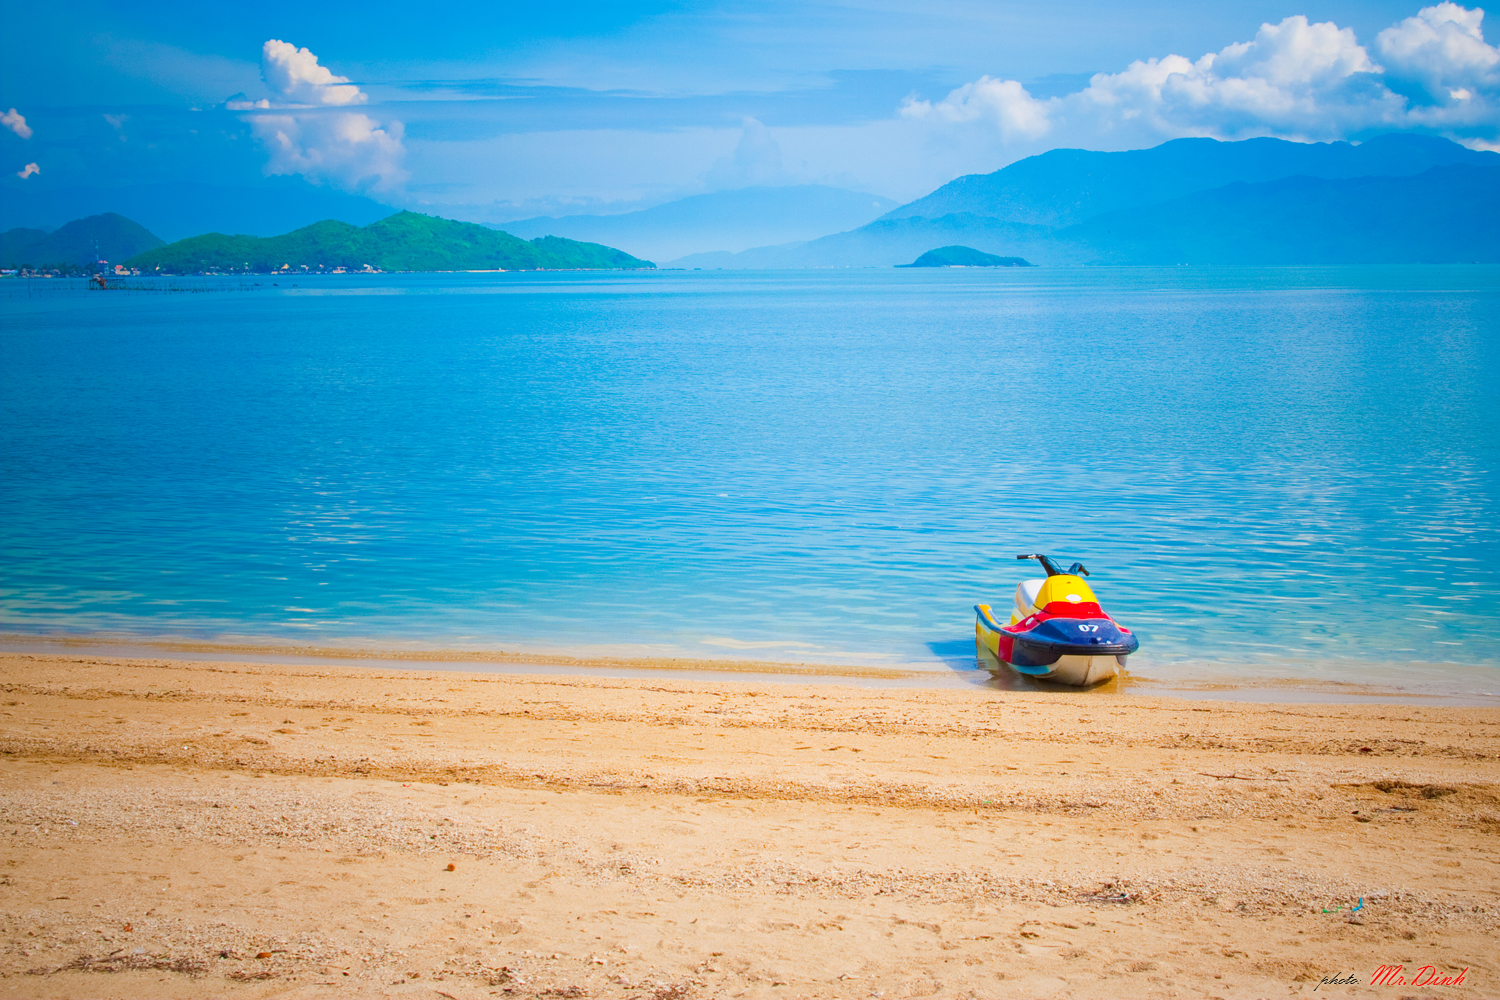 Hanging out on Monkey Island is one of the best things to do in Nha Trang